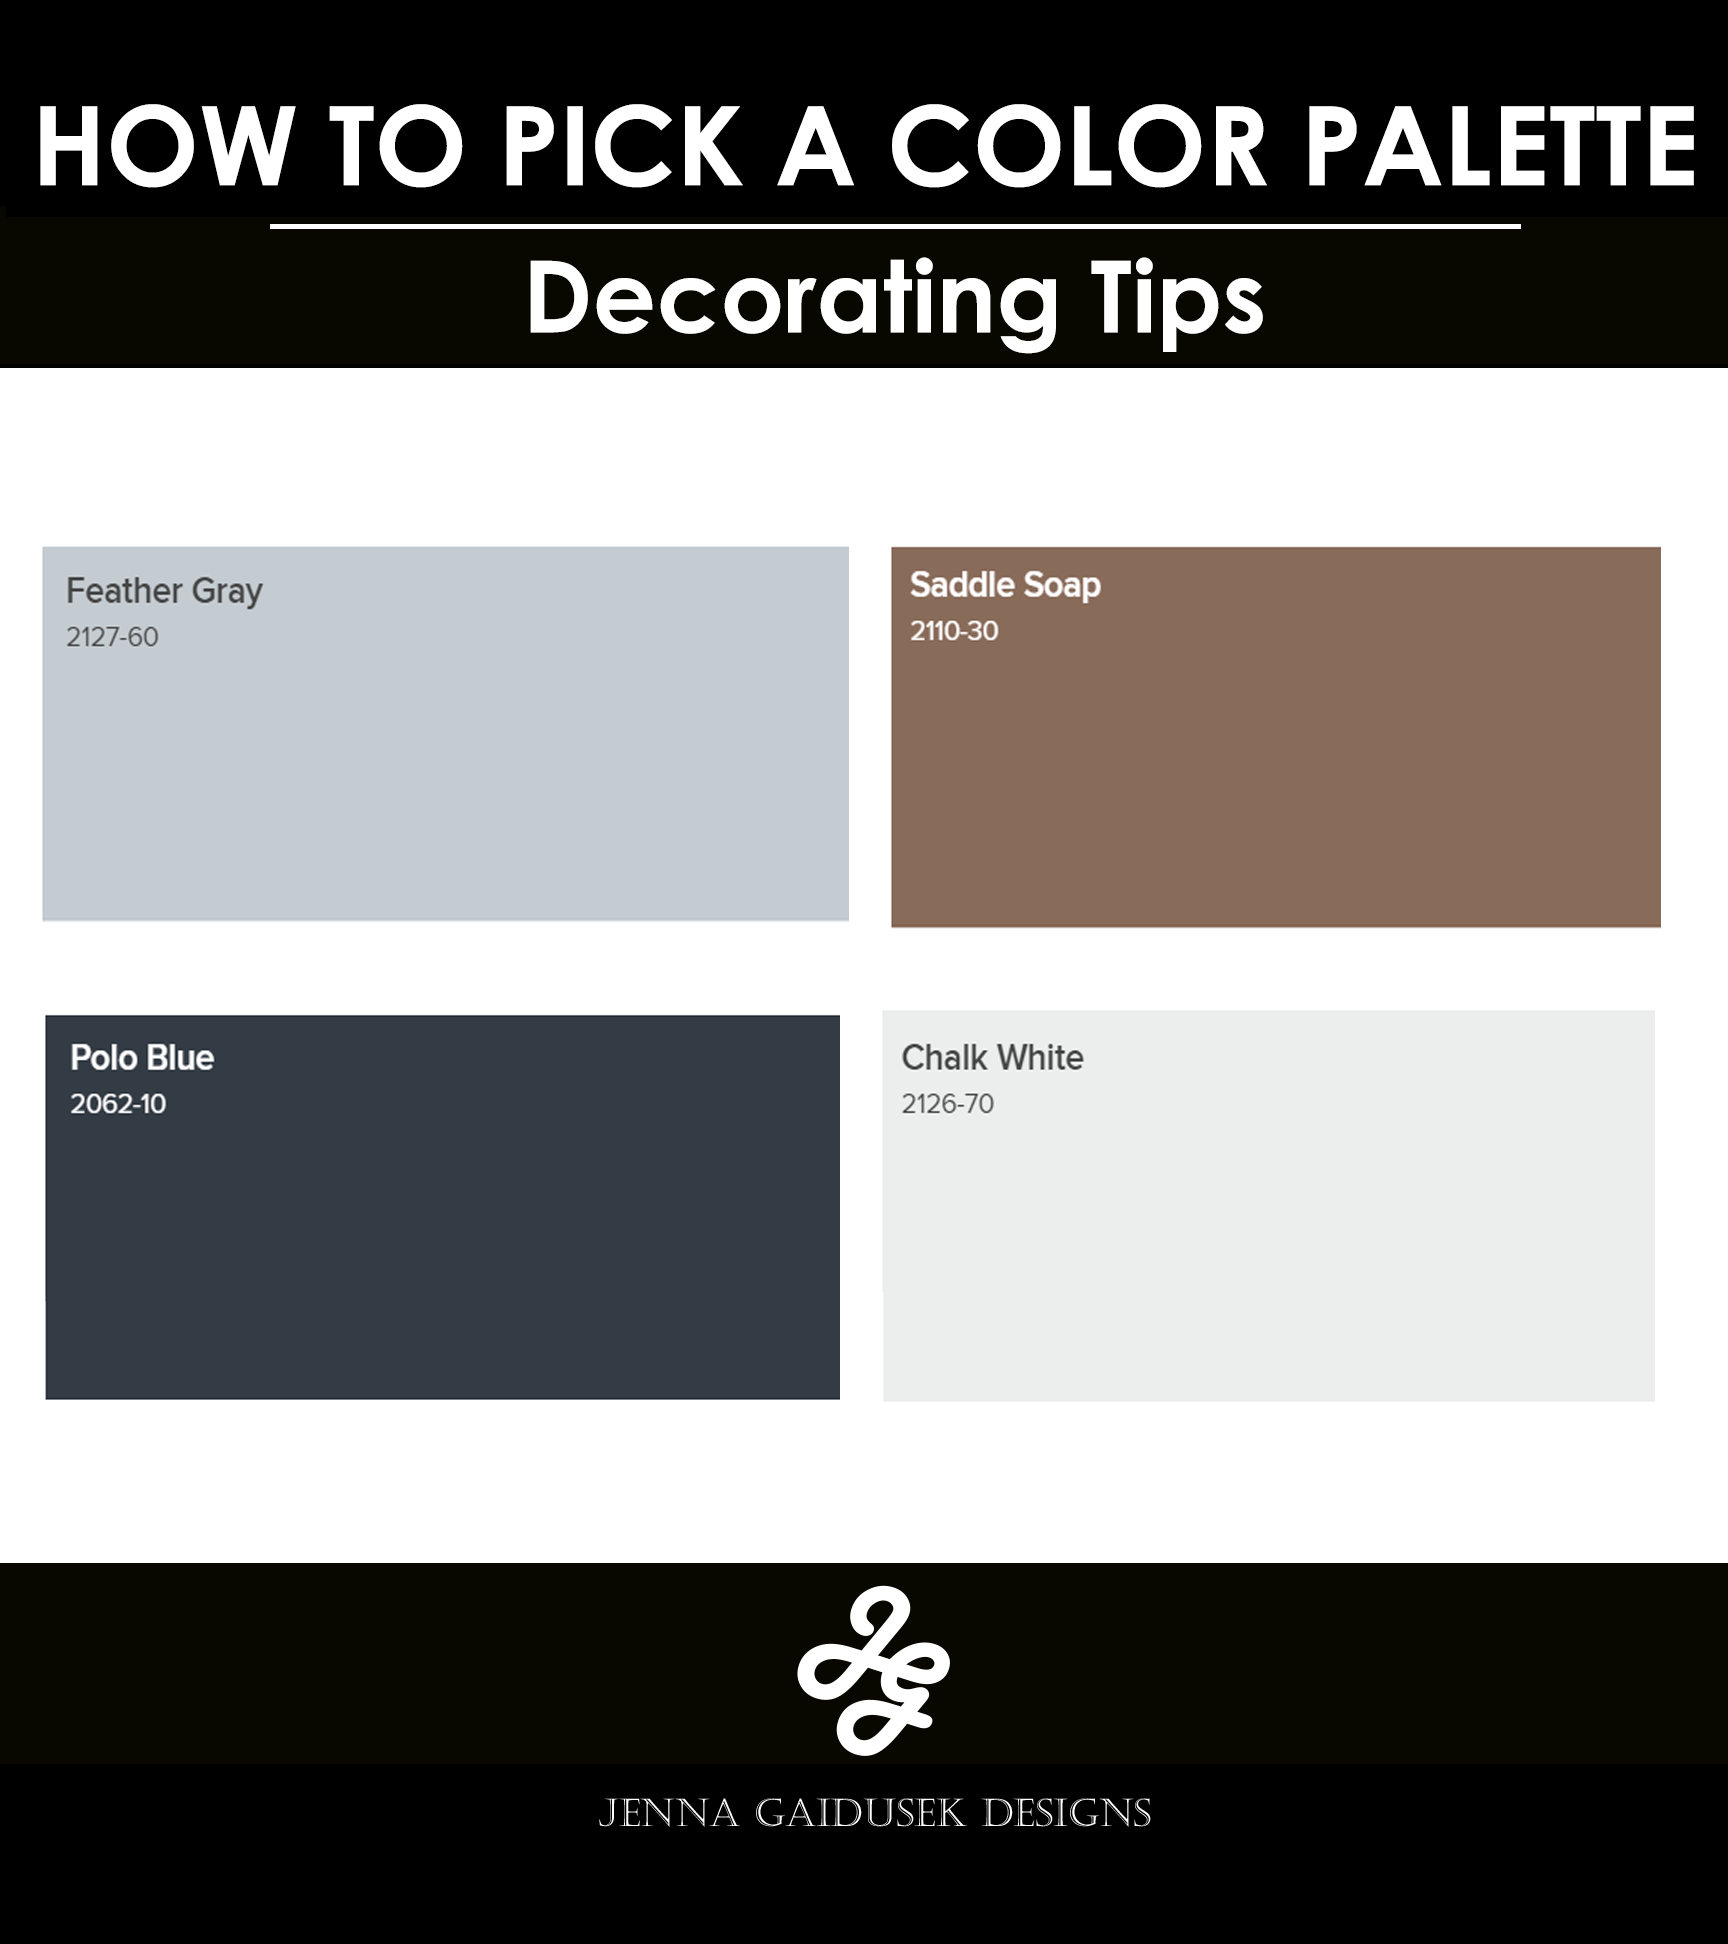 You don't have to have ALL the colors in your desired color palette in the rug. But having at least 2-3 of them is helpful so you can tie in other accents like pillows, throw blankets and other colorful accessories.  Start with a neutral larger piece sitting on top of the area rug. You can do a light or dark neutral color that ads as a backdrop for your accessorized color palette.   #Farmhouse #bohostyle #moderndecor